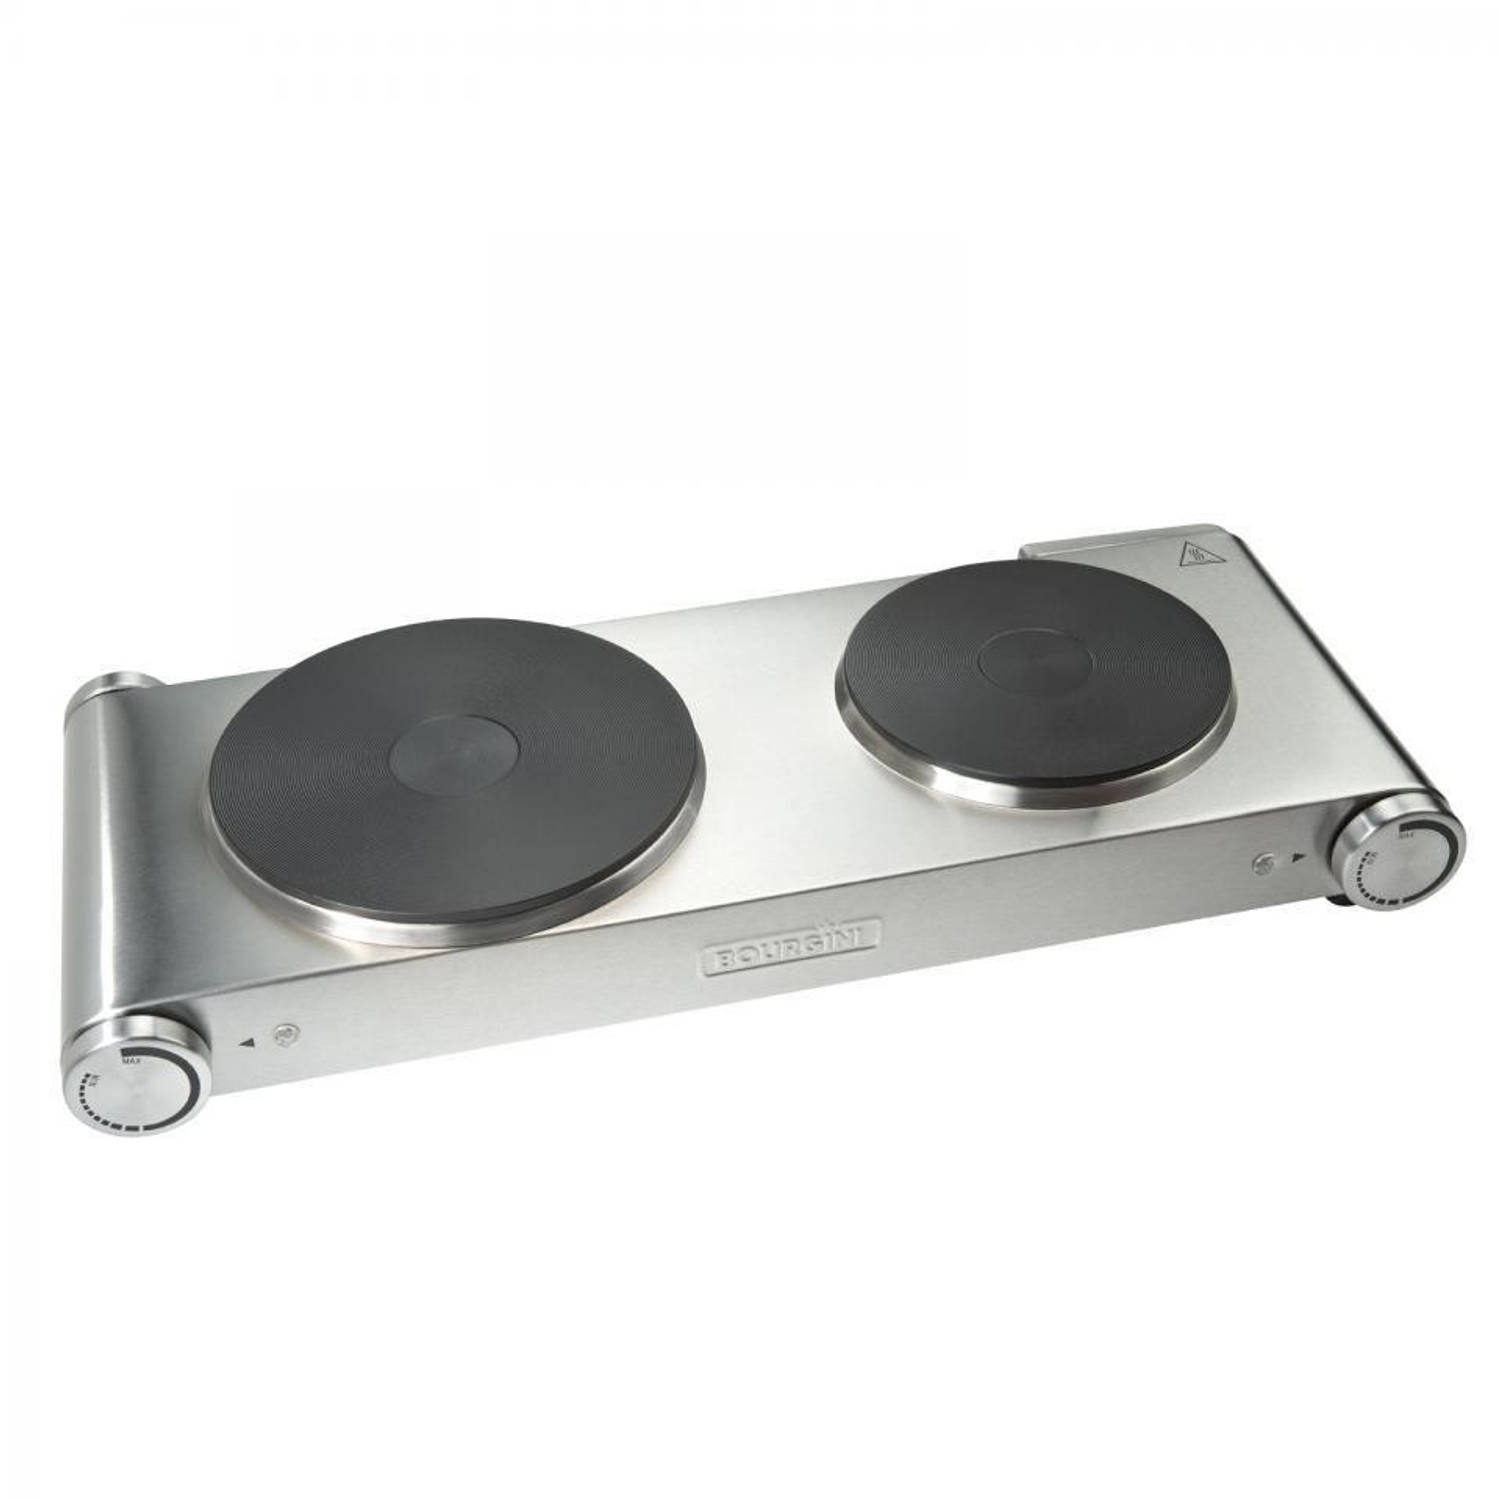 Korting Bourgini Classic Cooking Plate Duo 30.2000.00.00